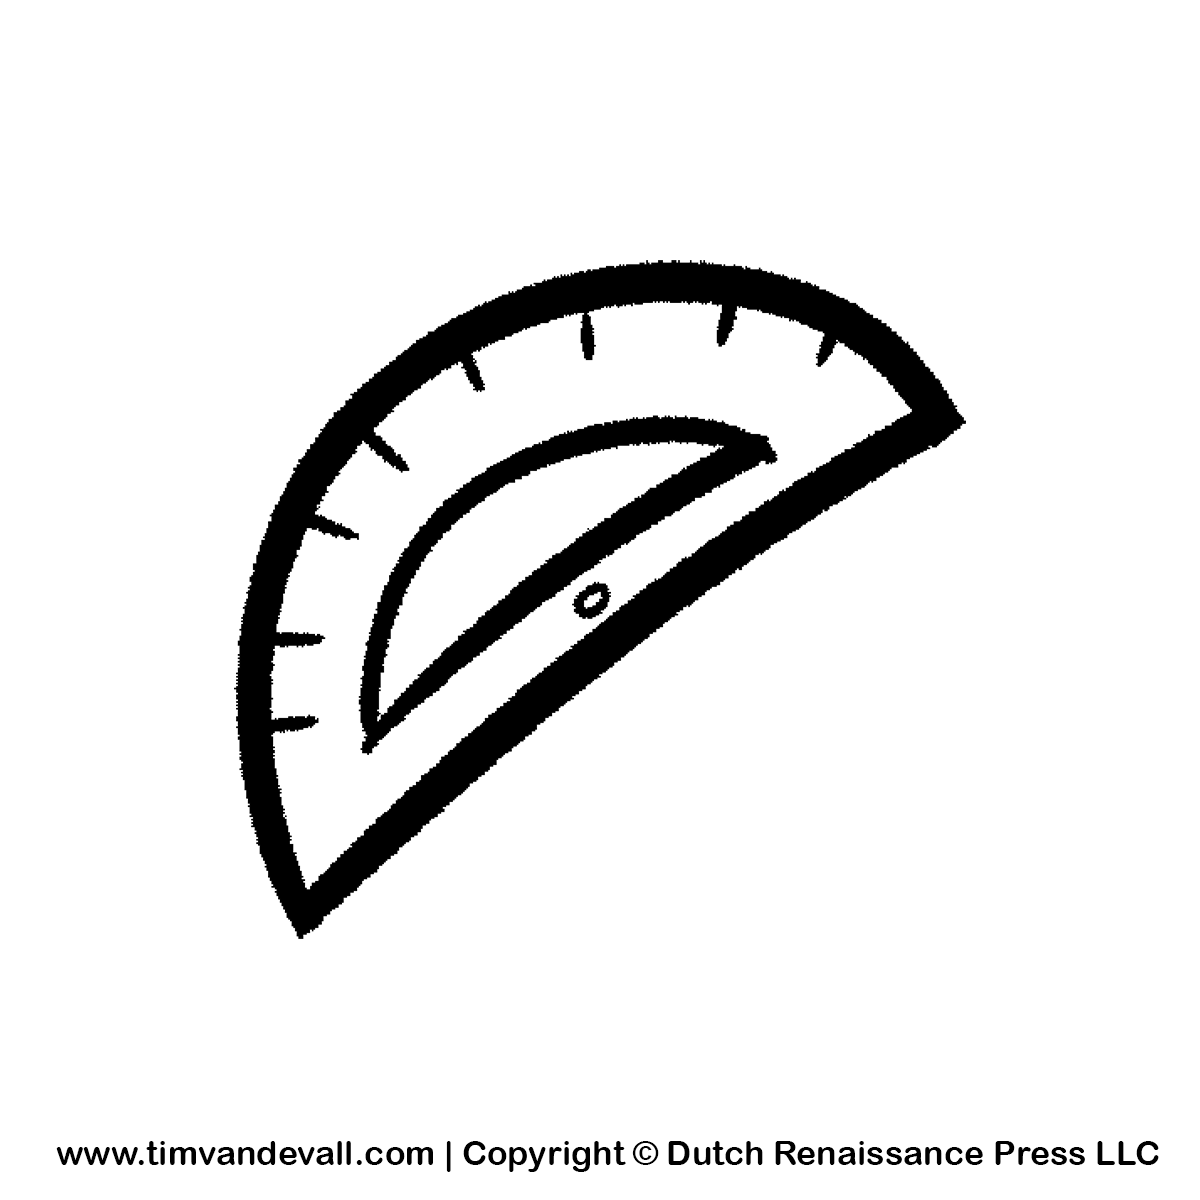 Protractor clipart 20 free Cliparts | Download images on ...